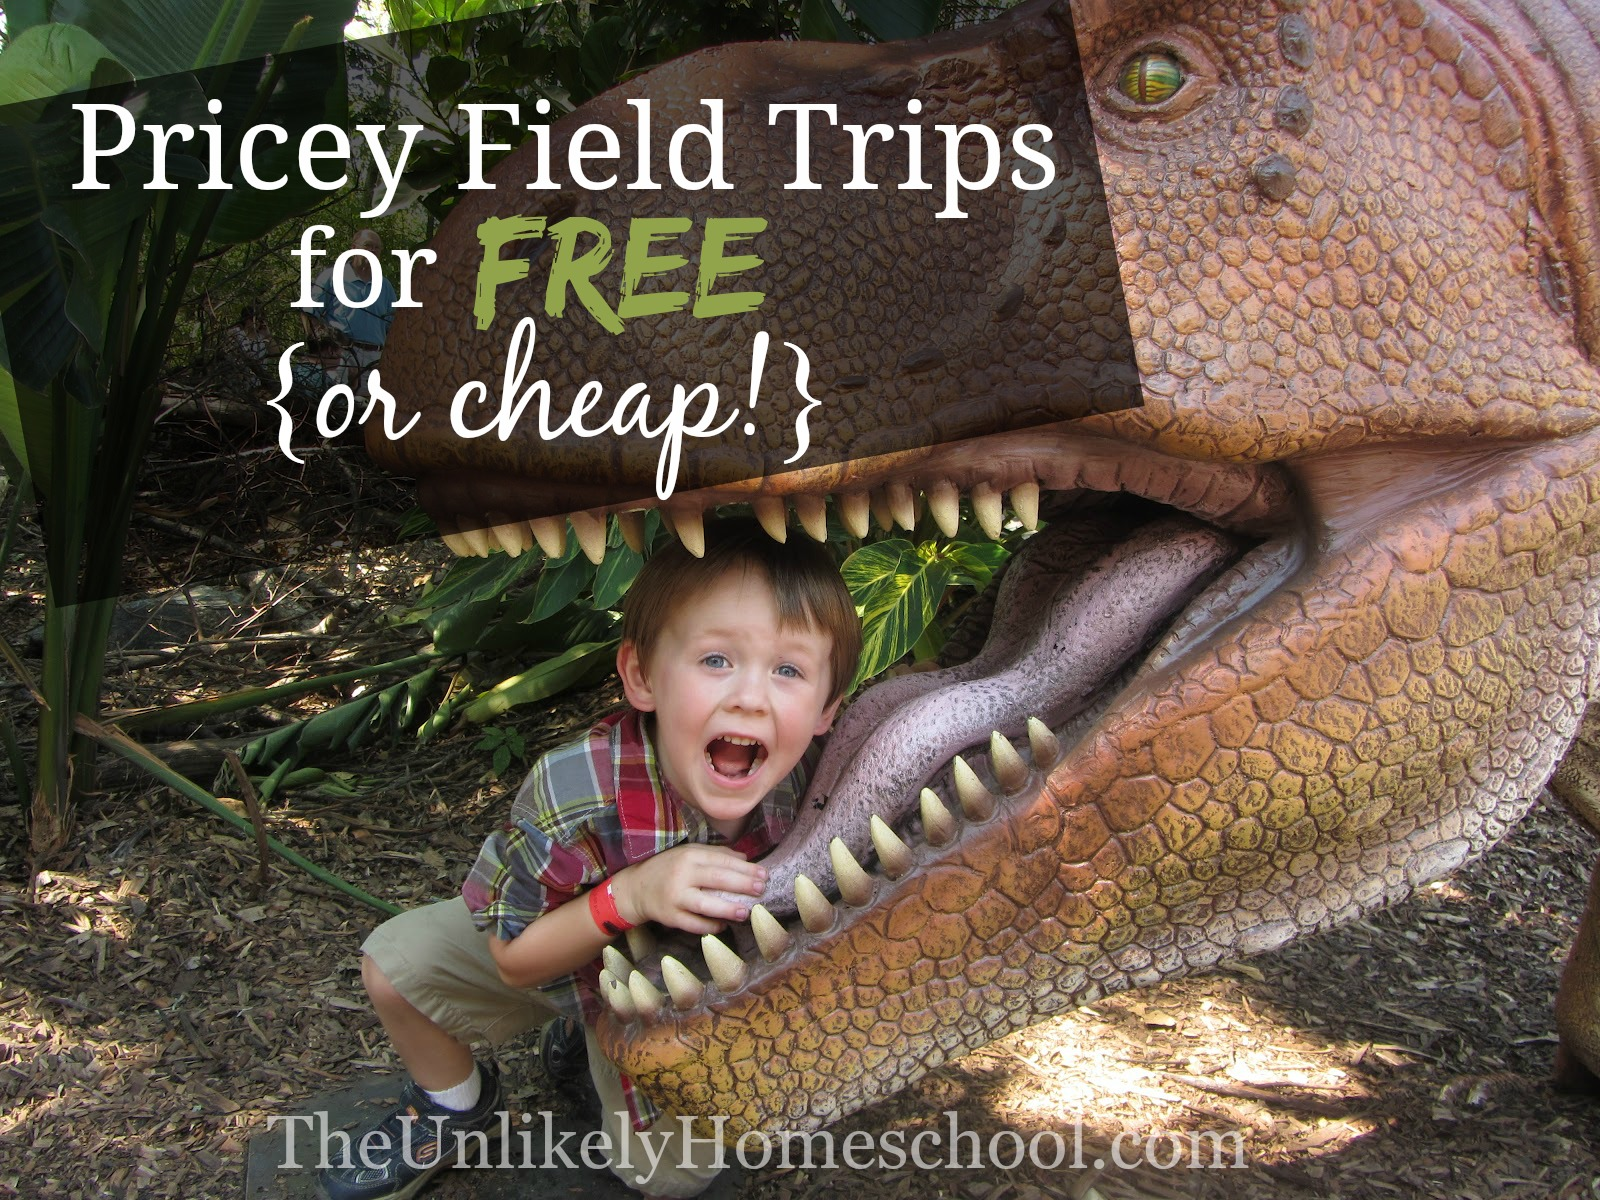 The Unlikely Homeschool Pricey Field Trips For Free Or Cheap